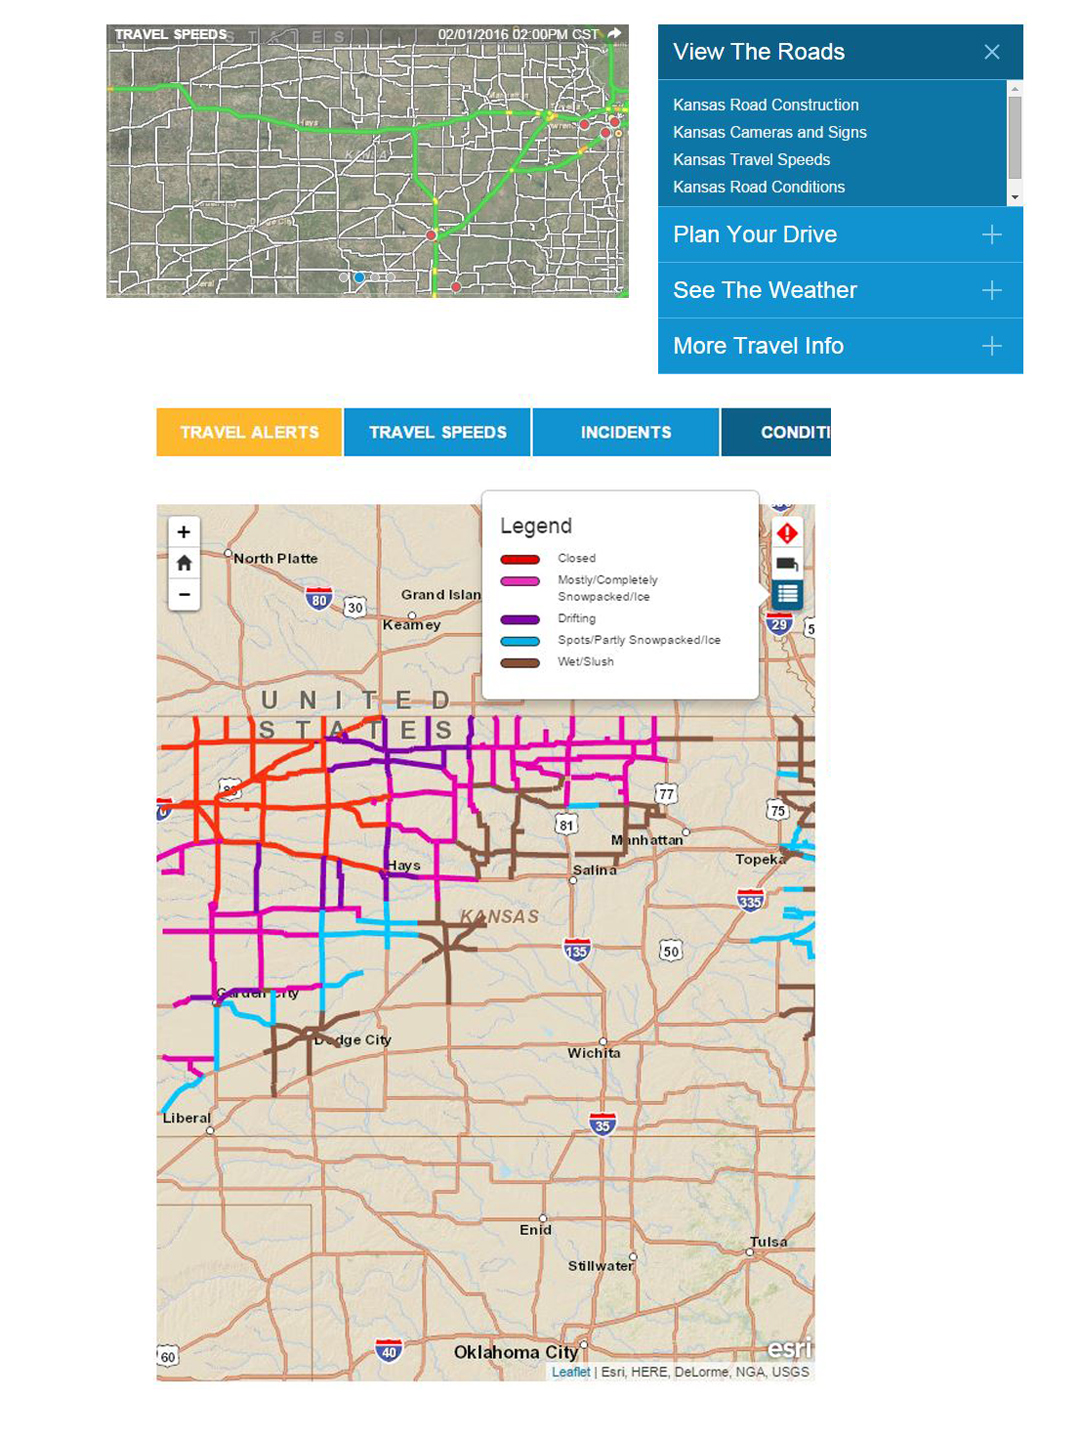 Kdot Road Conditions Map | Pics | Download | K Dot Road Conditions Map on txdot road conditions, hot road conditions, missouri road conditions, kdot road conditions, modot winter road conditions, sddot road conditions, mndot road conditions, snow road conditions, iowa i-35 road conditions, mn 511 road conditions, odot road conditions, va road conditions, caltrans road conditions, interstate 80 road conditions, ca road conditions, vdot road conditions, washington road conditions, i-80 road conditions, arizona road conditions, cdot road conditions,